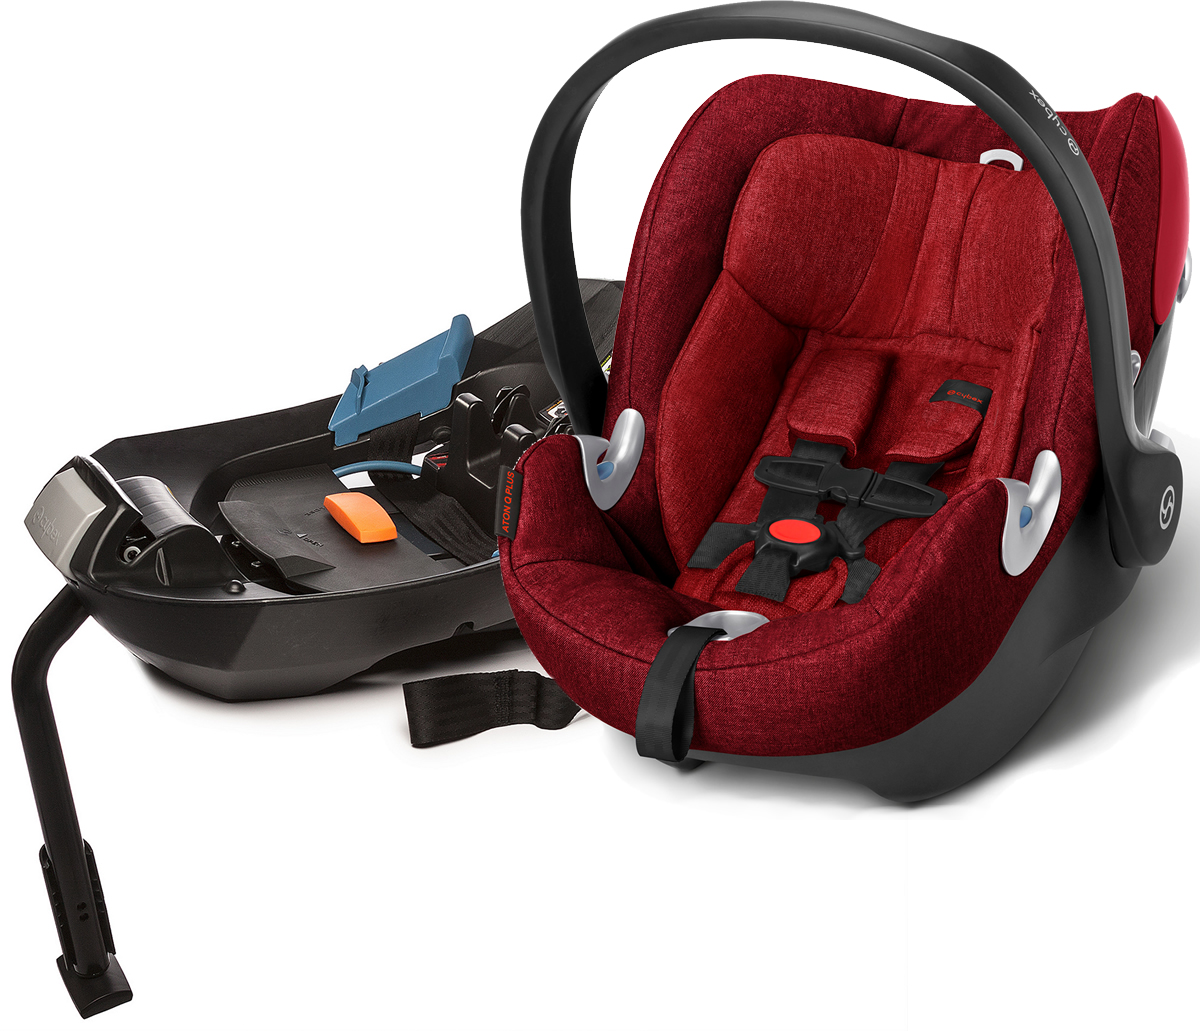 Avocent Aton Q Plus Infant Car Seat - Hot & Spicy